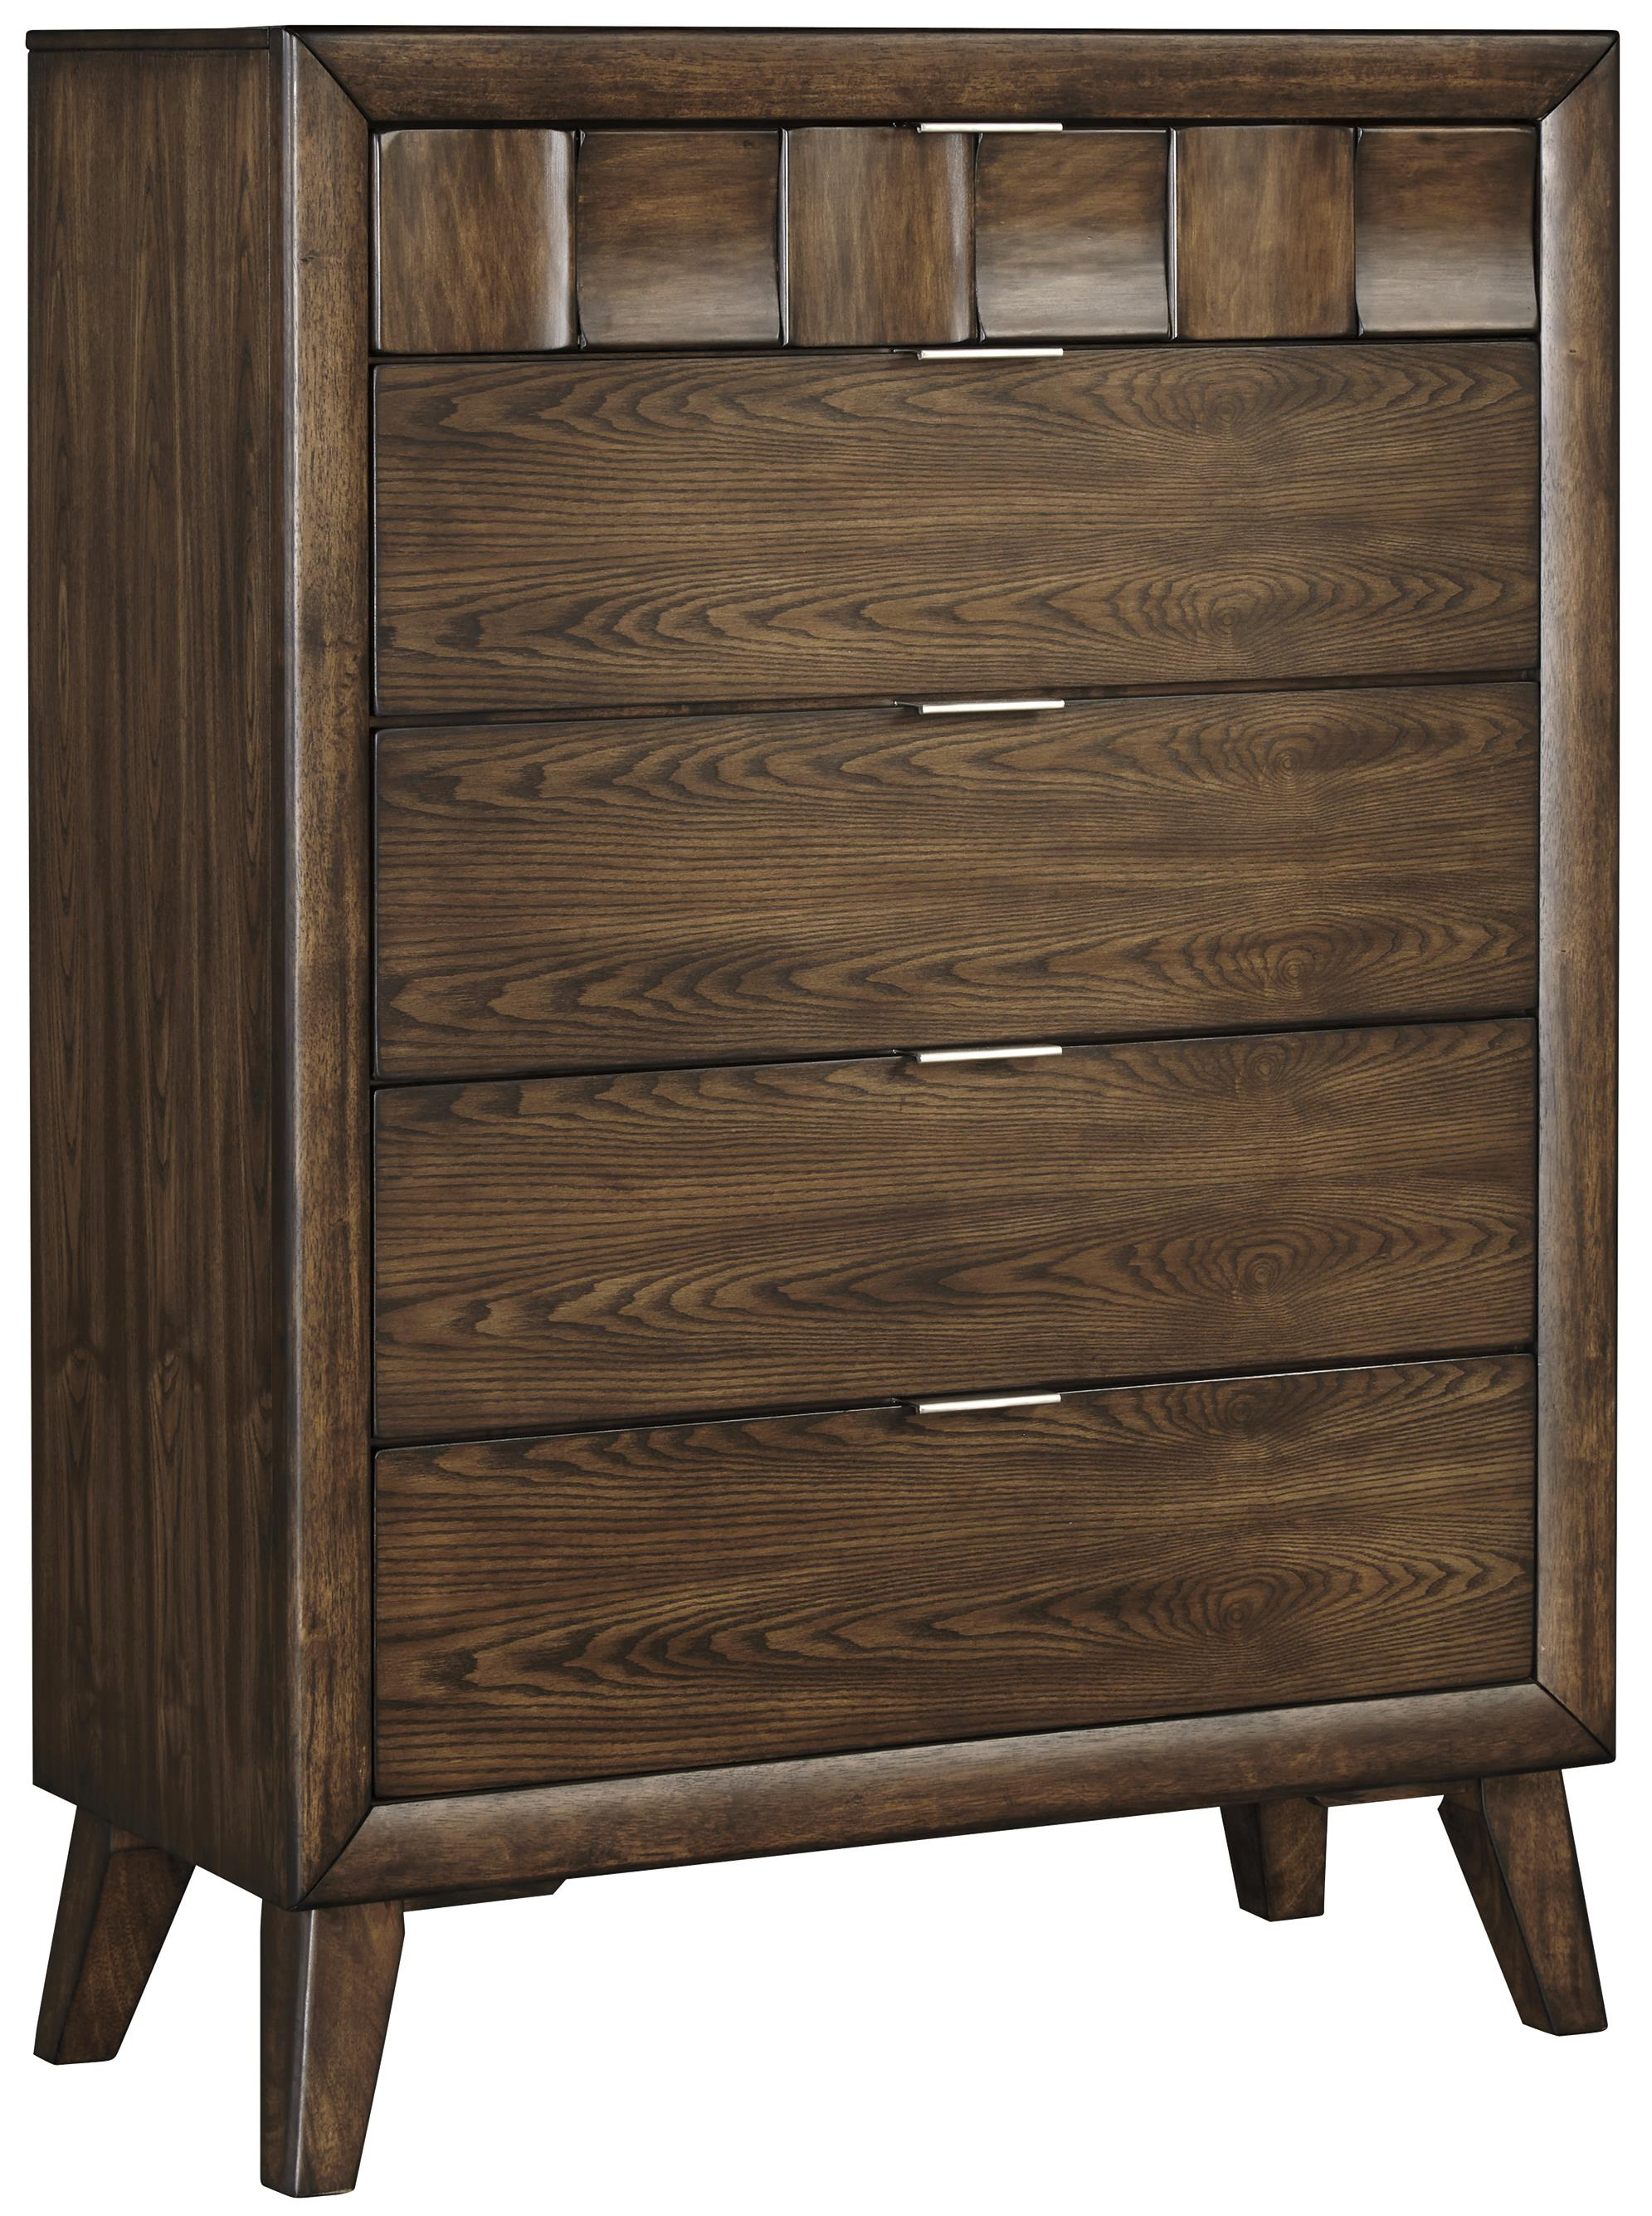 Signature Design by Ashley Debeaux Five Drawer Chest - Item Number: B535-46